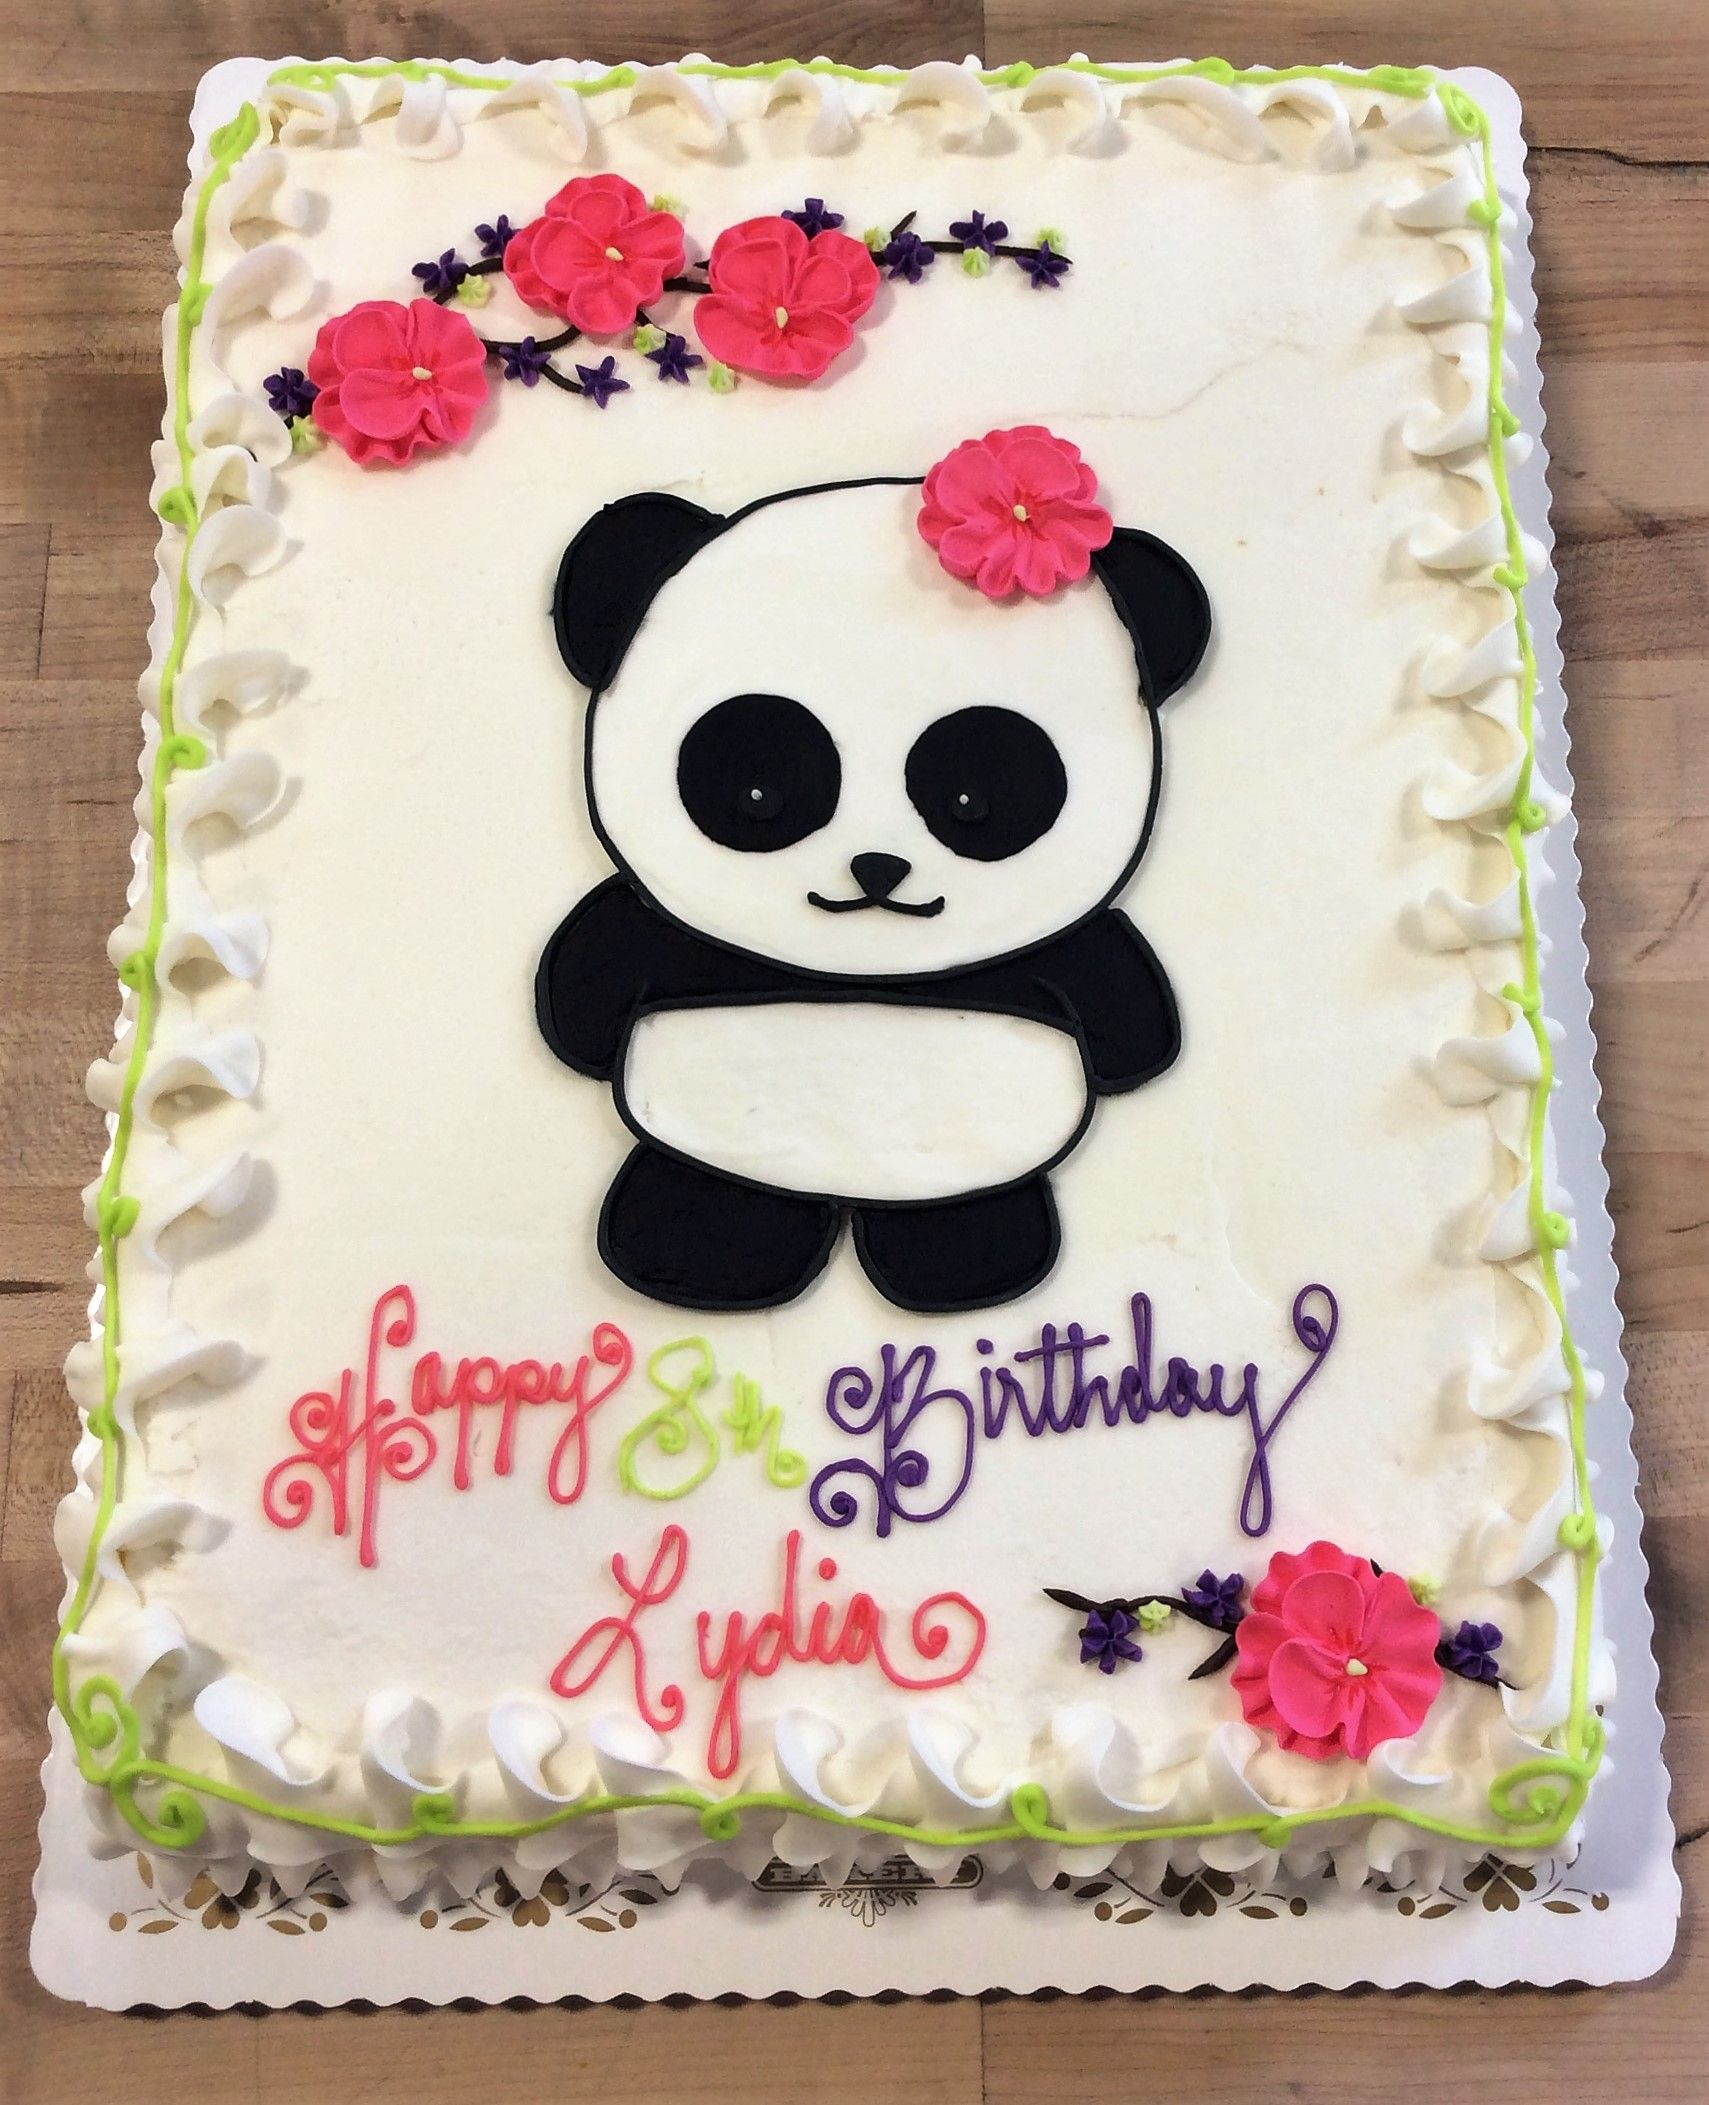 Terrific Sheet Cake With Piped Panda Decoration Birthday Cakes Girls Kids Birthday Cards Printable Riciscafe Filternl